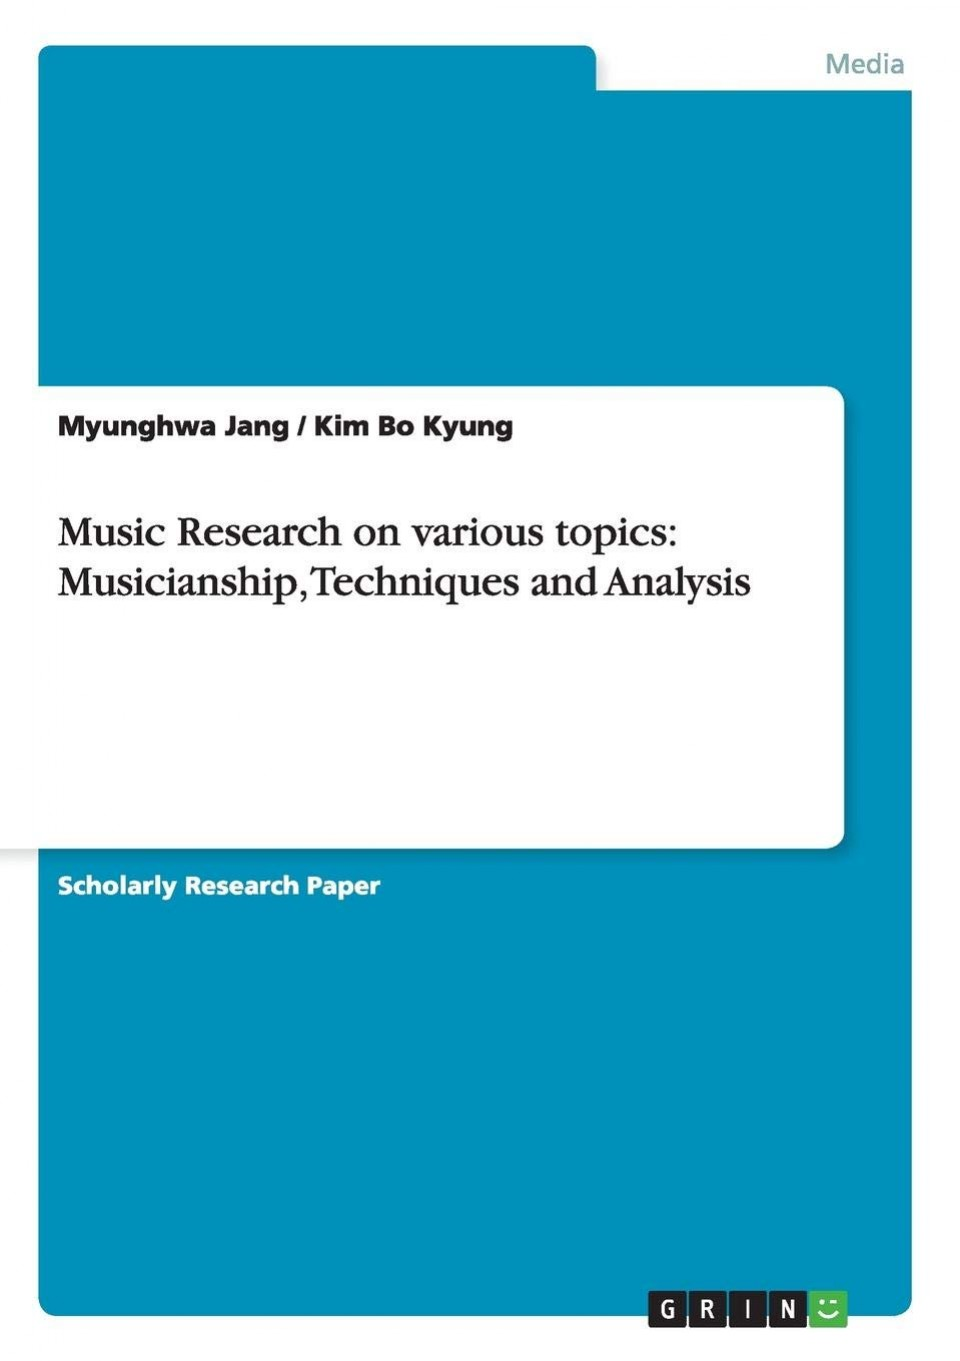 019 Popular Music Research Paper Topics Fantastic Related 960